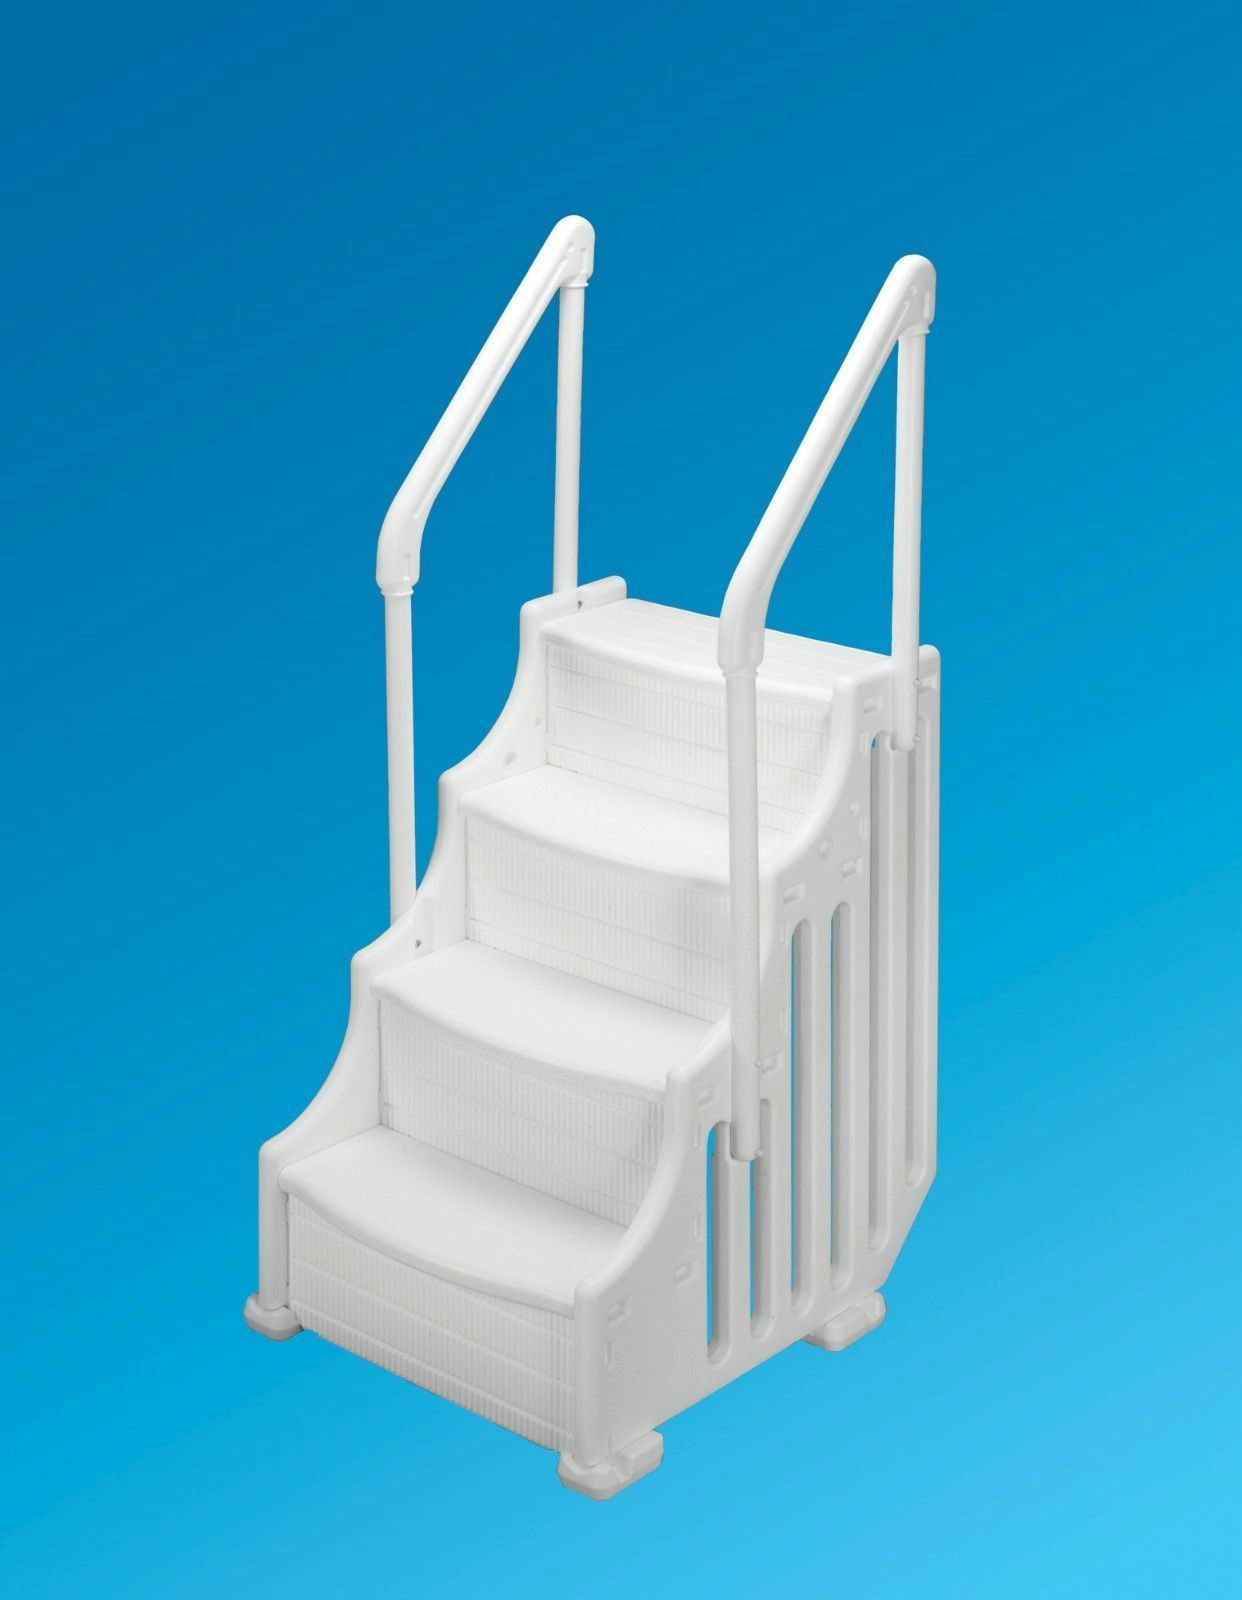 Swimming pool steps ladder floats tubes above ground spa outdoor backyard indoor ebay - Above ground pool steps ...